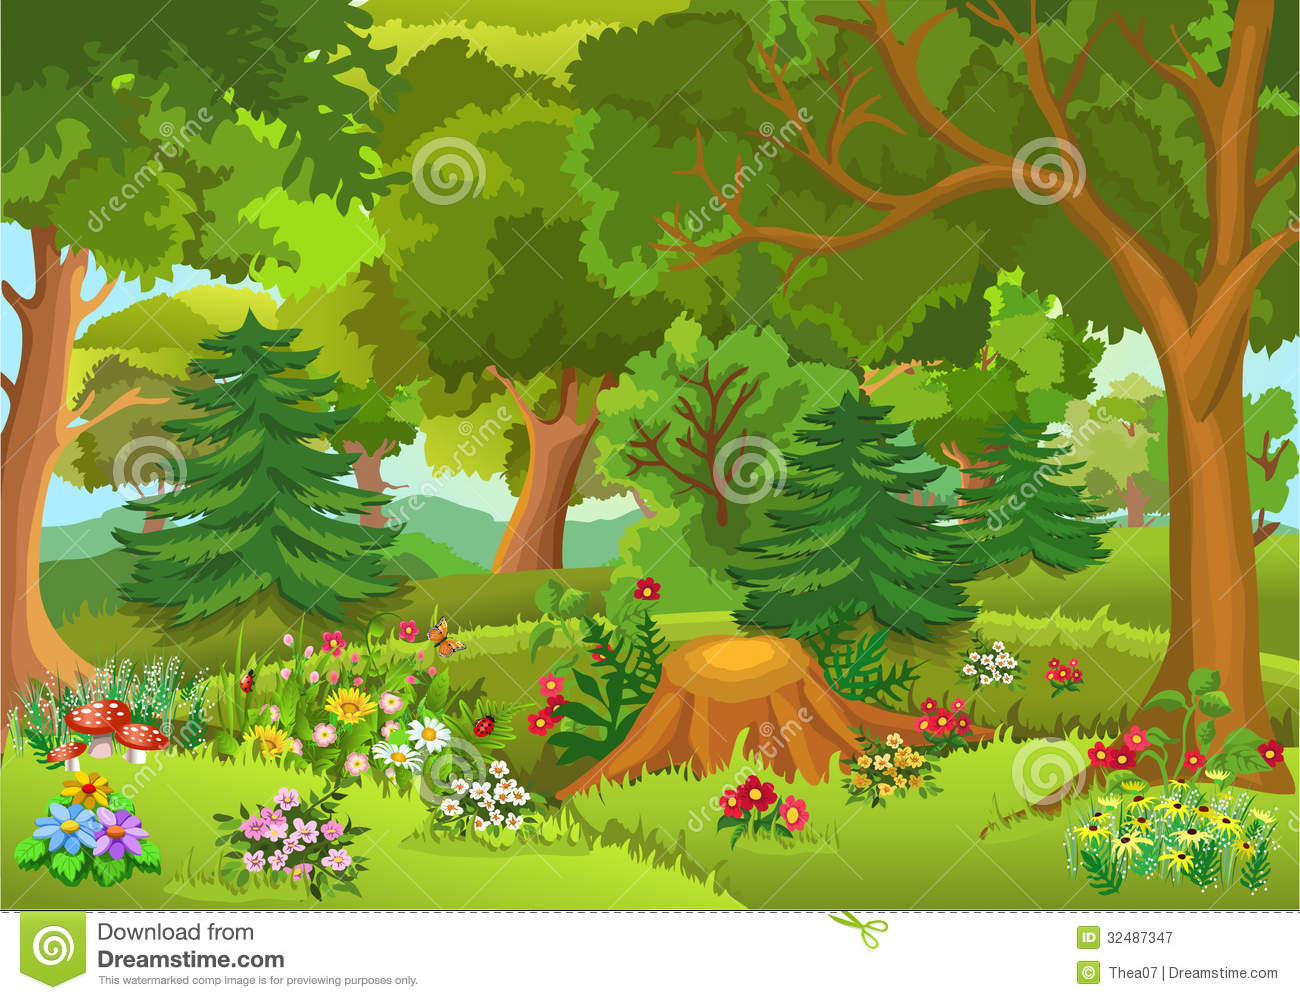 Fairytale Forest Royalty Free Stock Photography - Image: 32487347